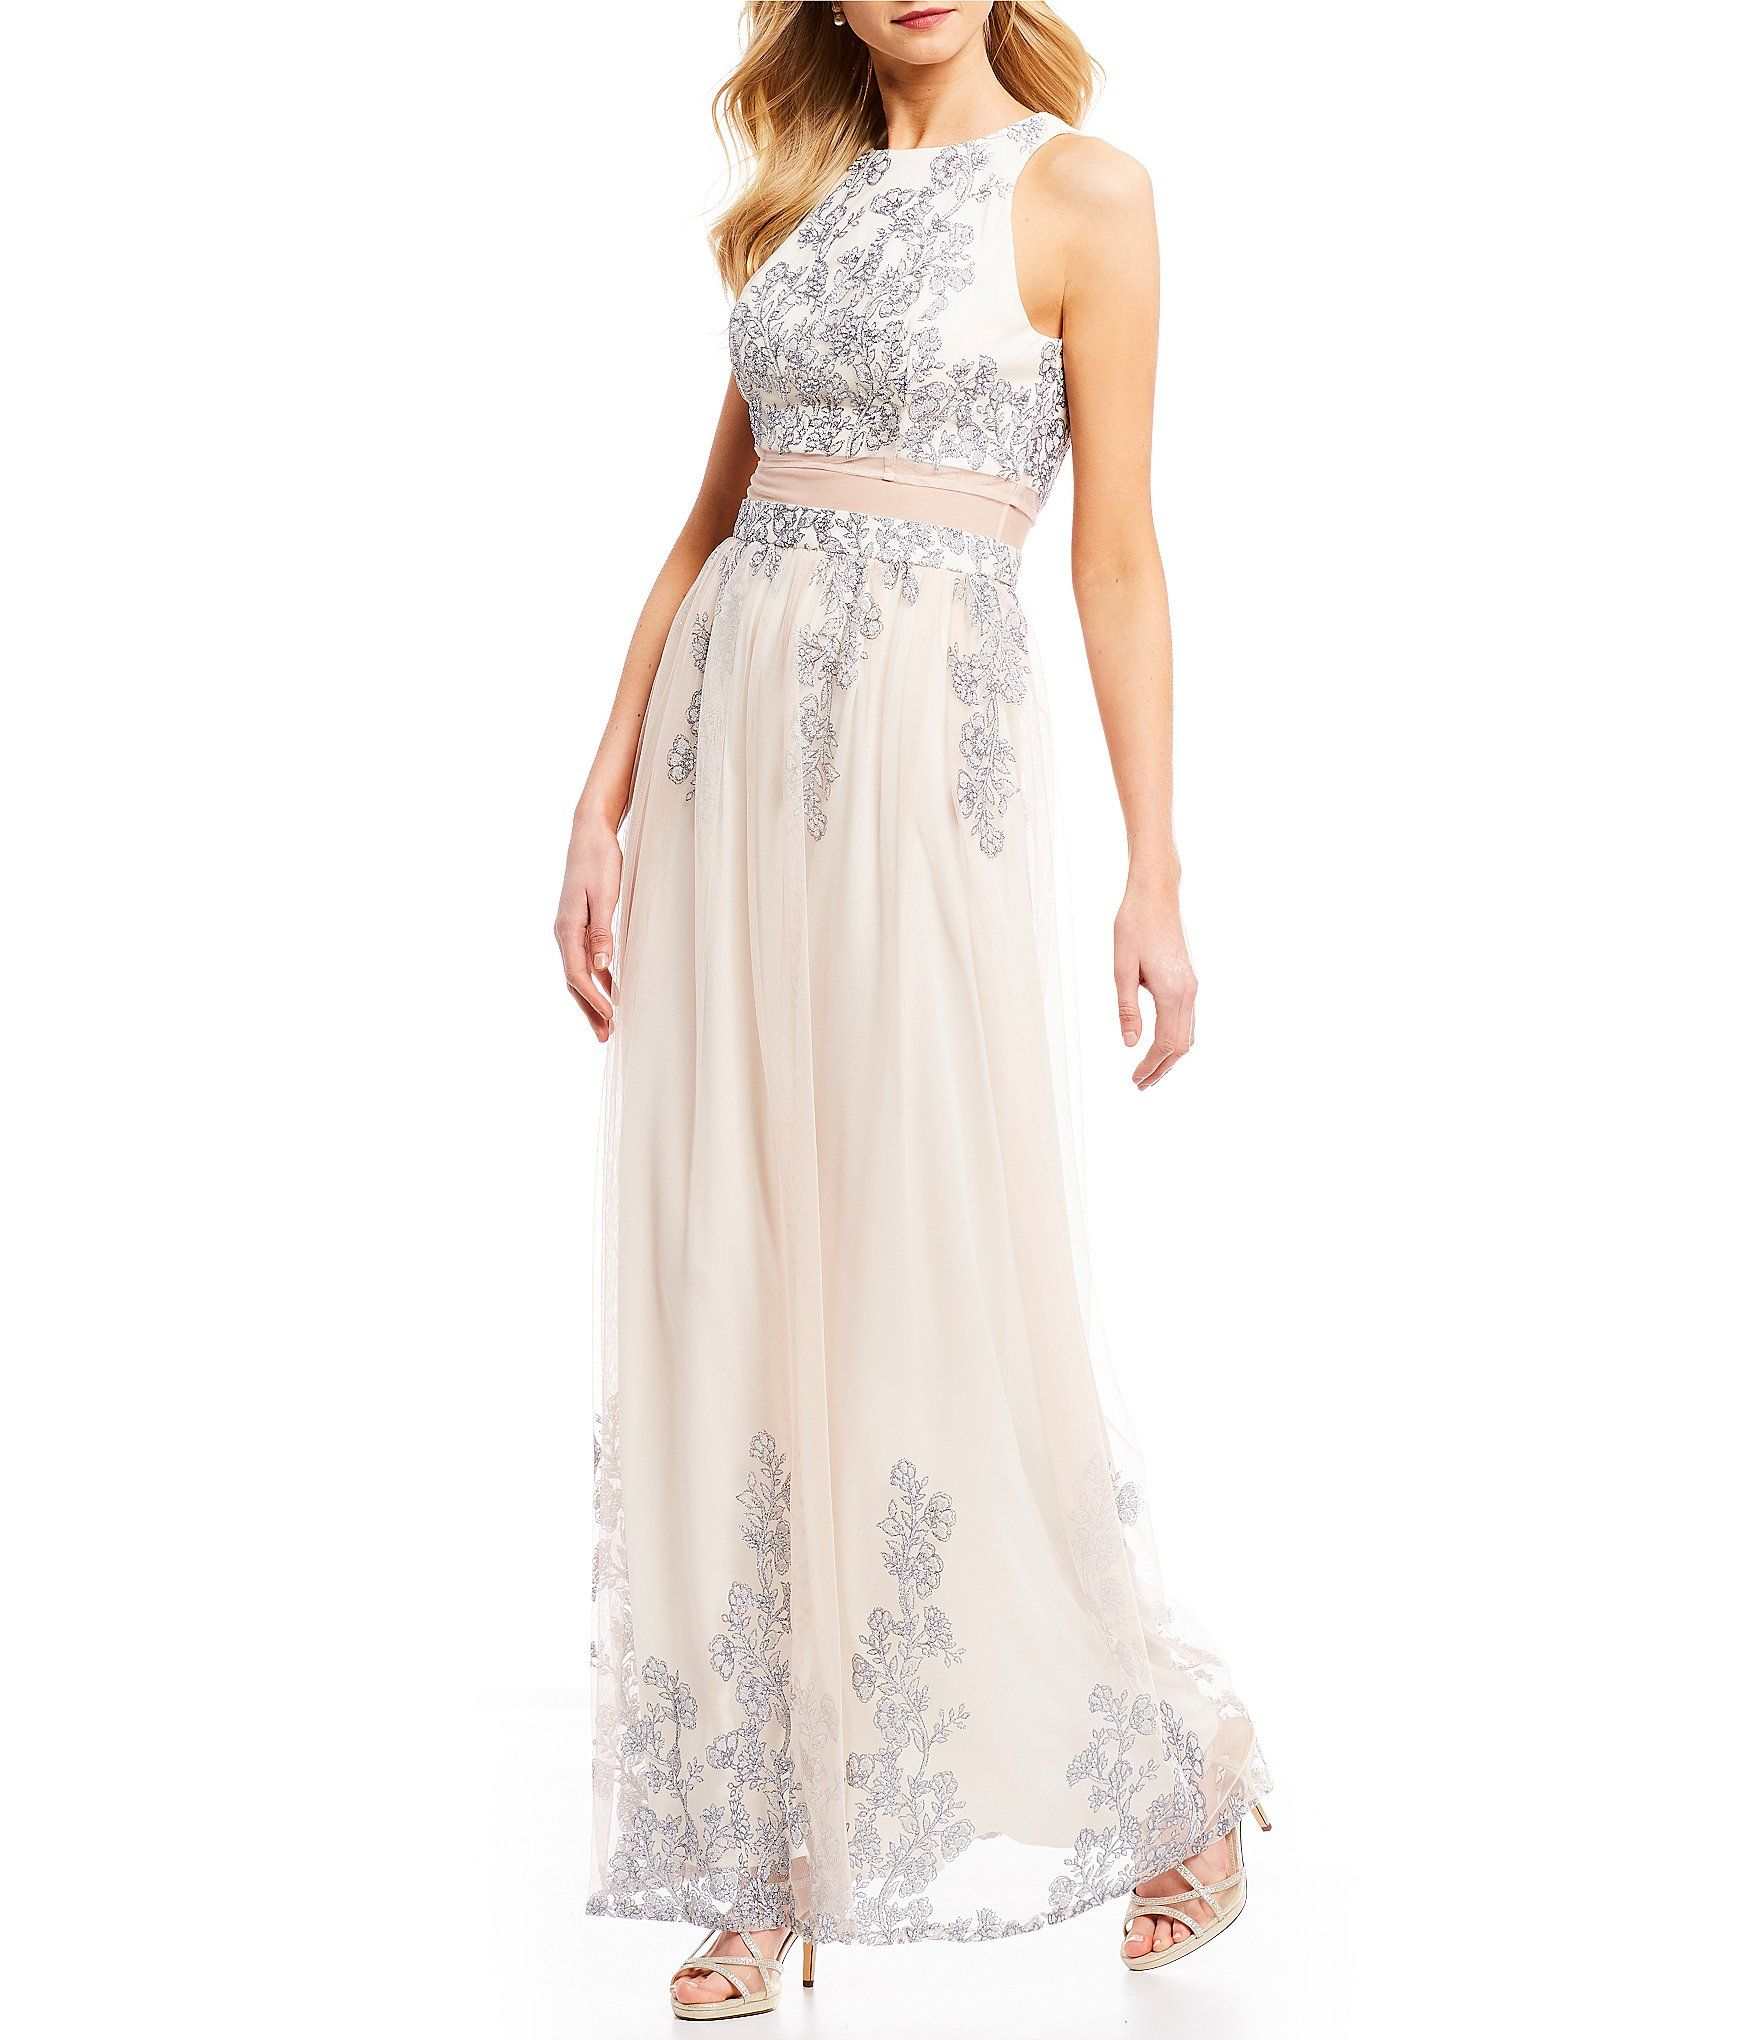 Shop for ignite evenings glitter mesh gown at dillards visit